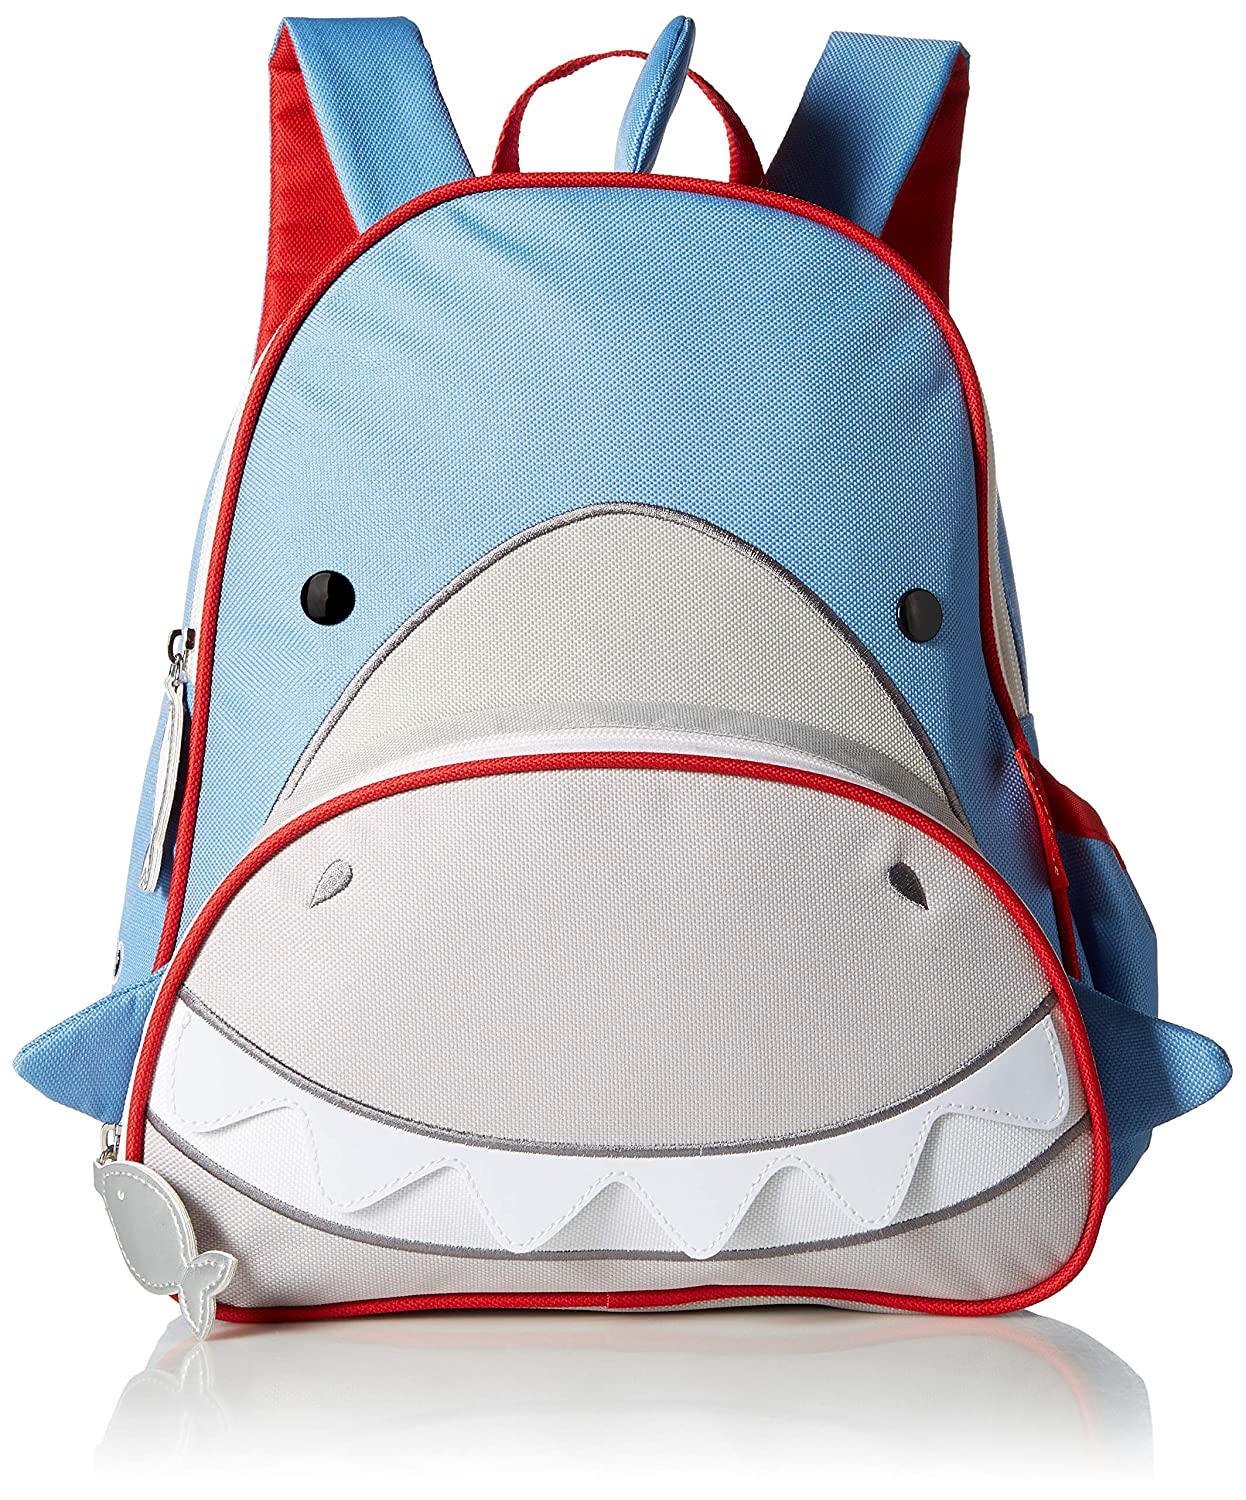 Skip Hop Toddler Backpack, 12 Shark School Bag, Multi